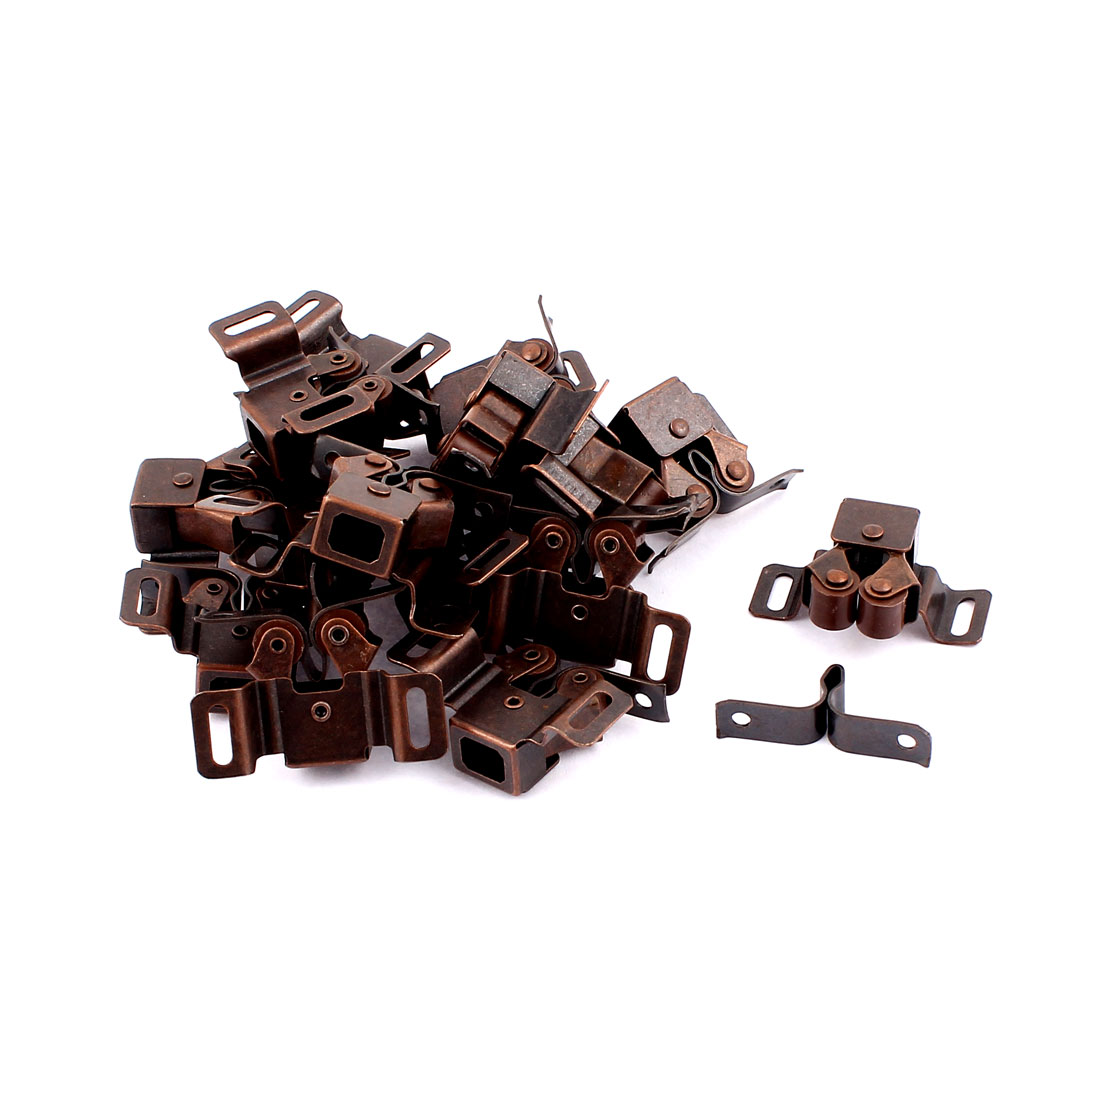 Cabinet Cupboard Door Double Ball Roller Catch Latch Lock Copper Tone 17 Pcs